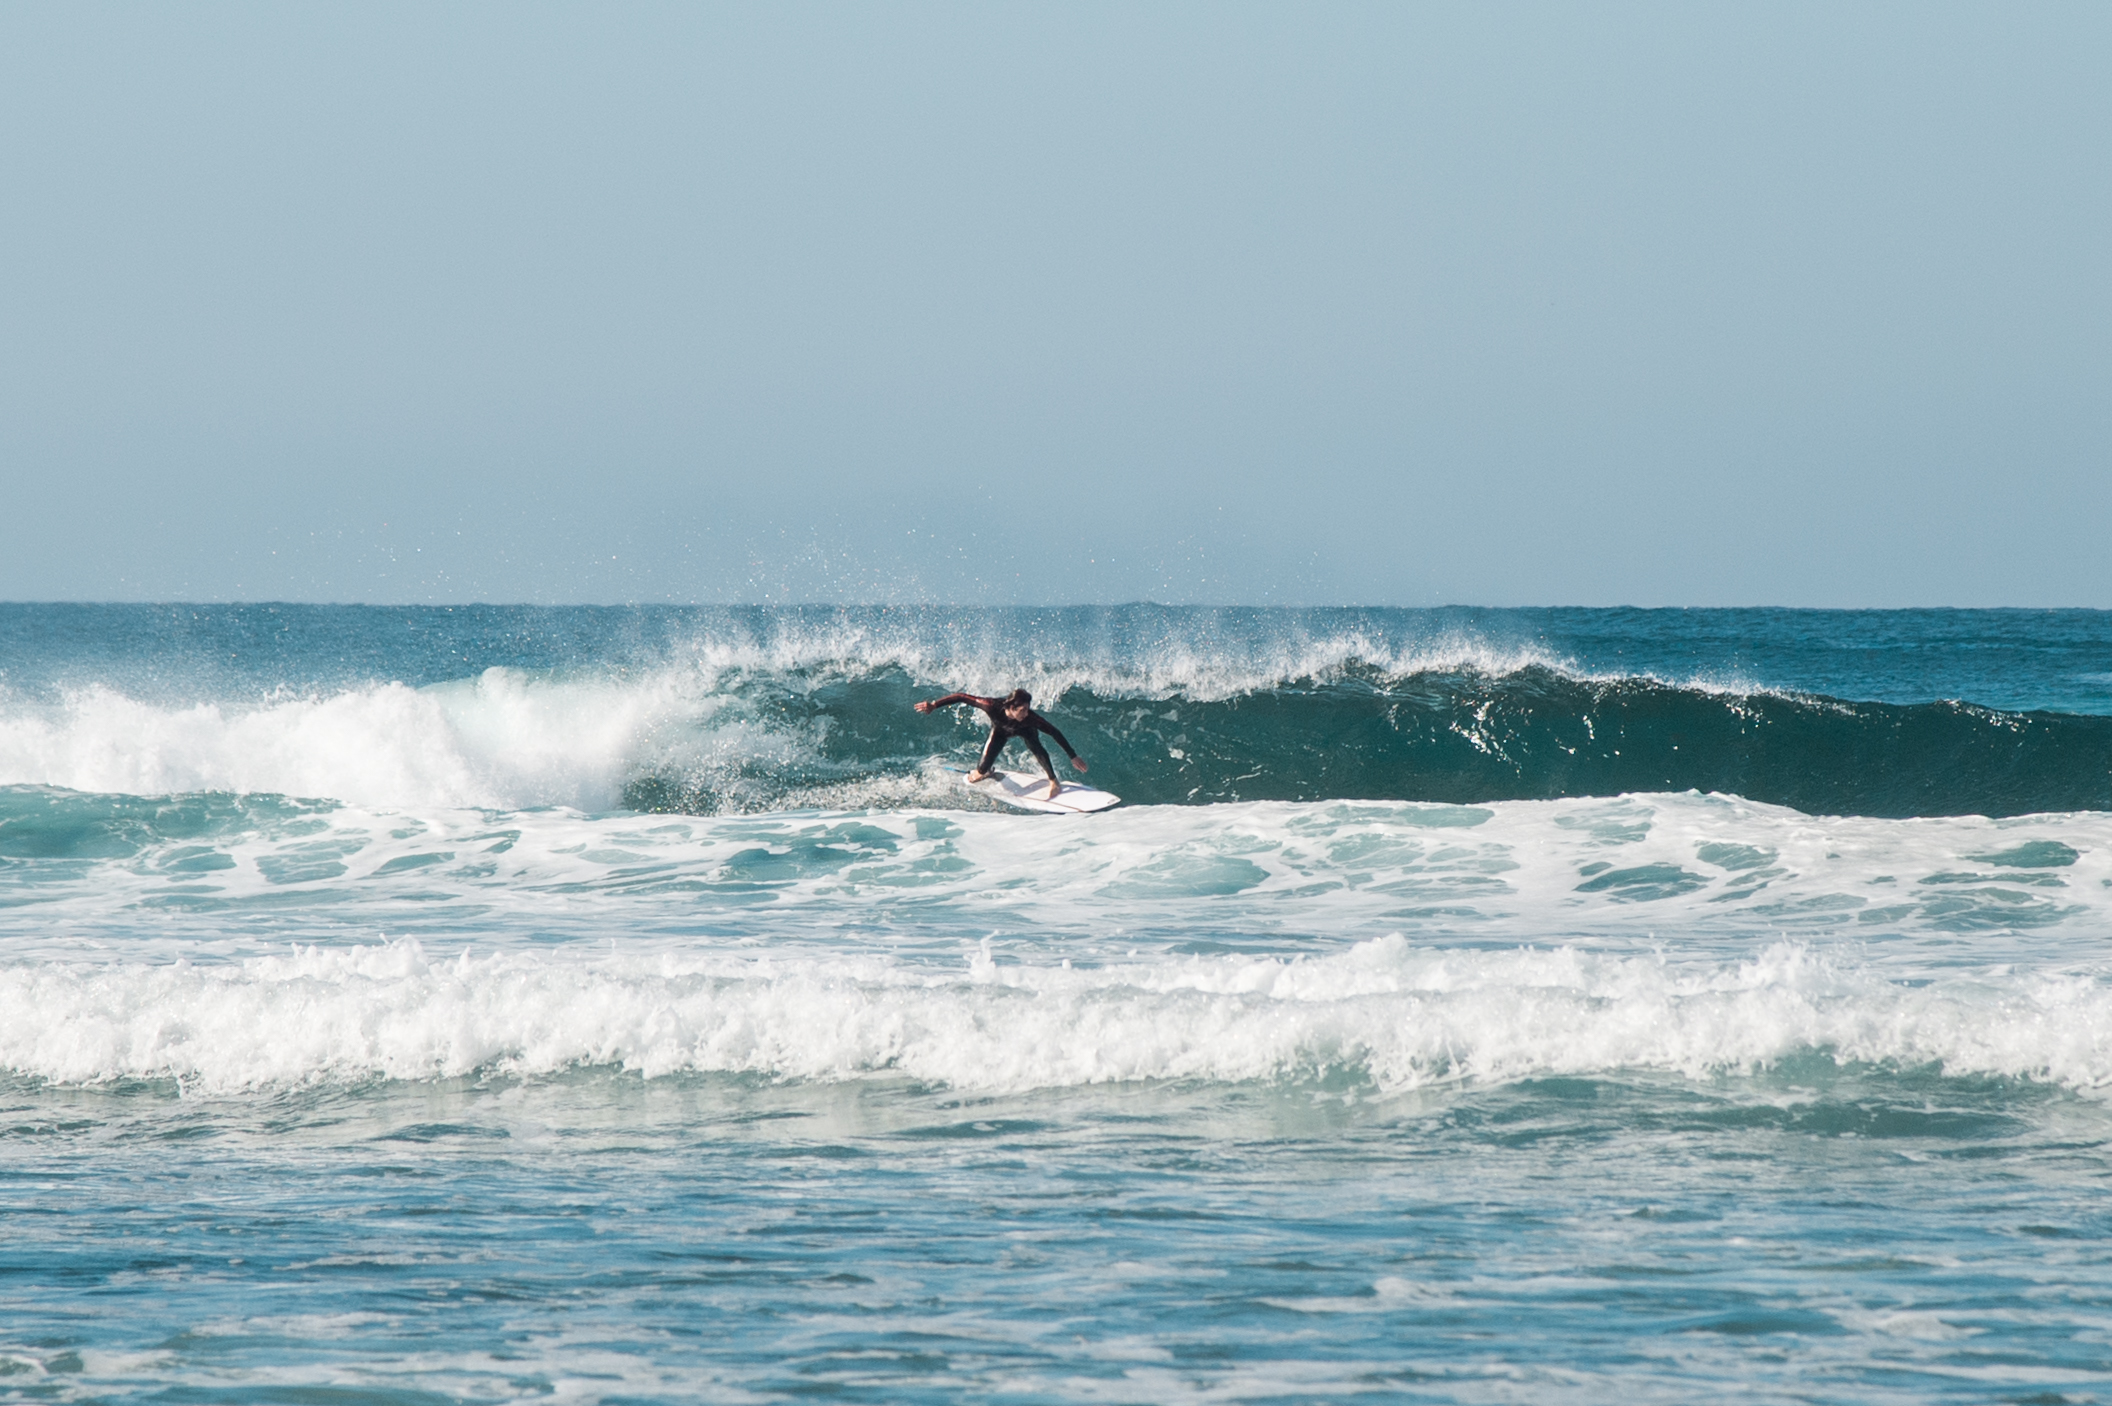 roofless_surfcamp_casamaccaroni_guesthouse_fuerteventura_surflodge_surf_waves_fun_2